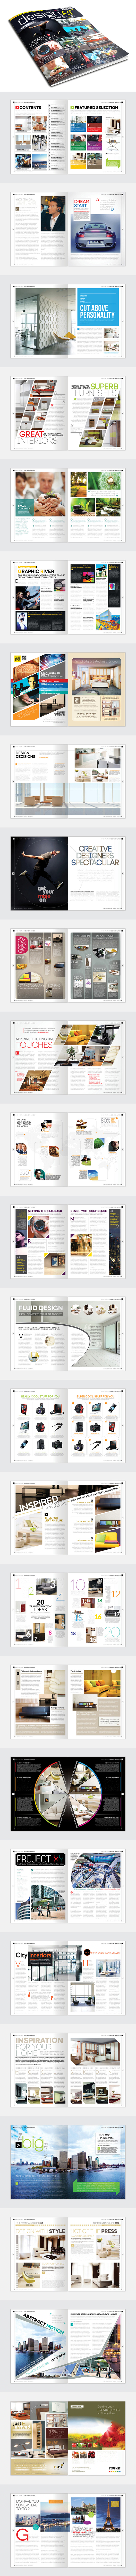 Magazine Template - InDesign 56 Page Layout V2 on Behance | 잡지 ...